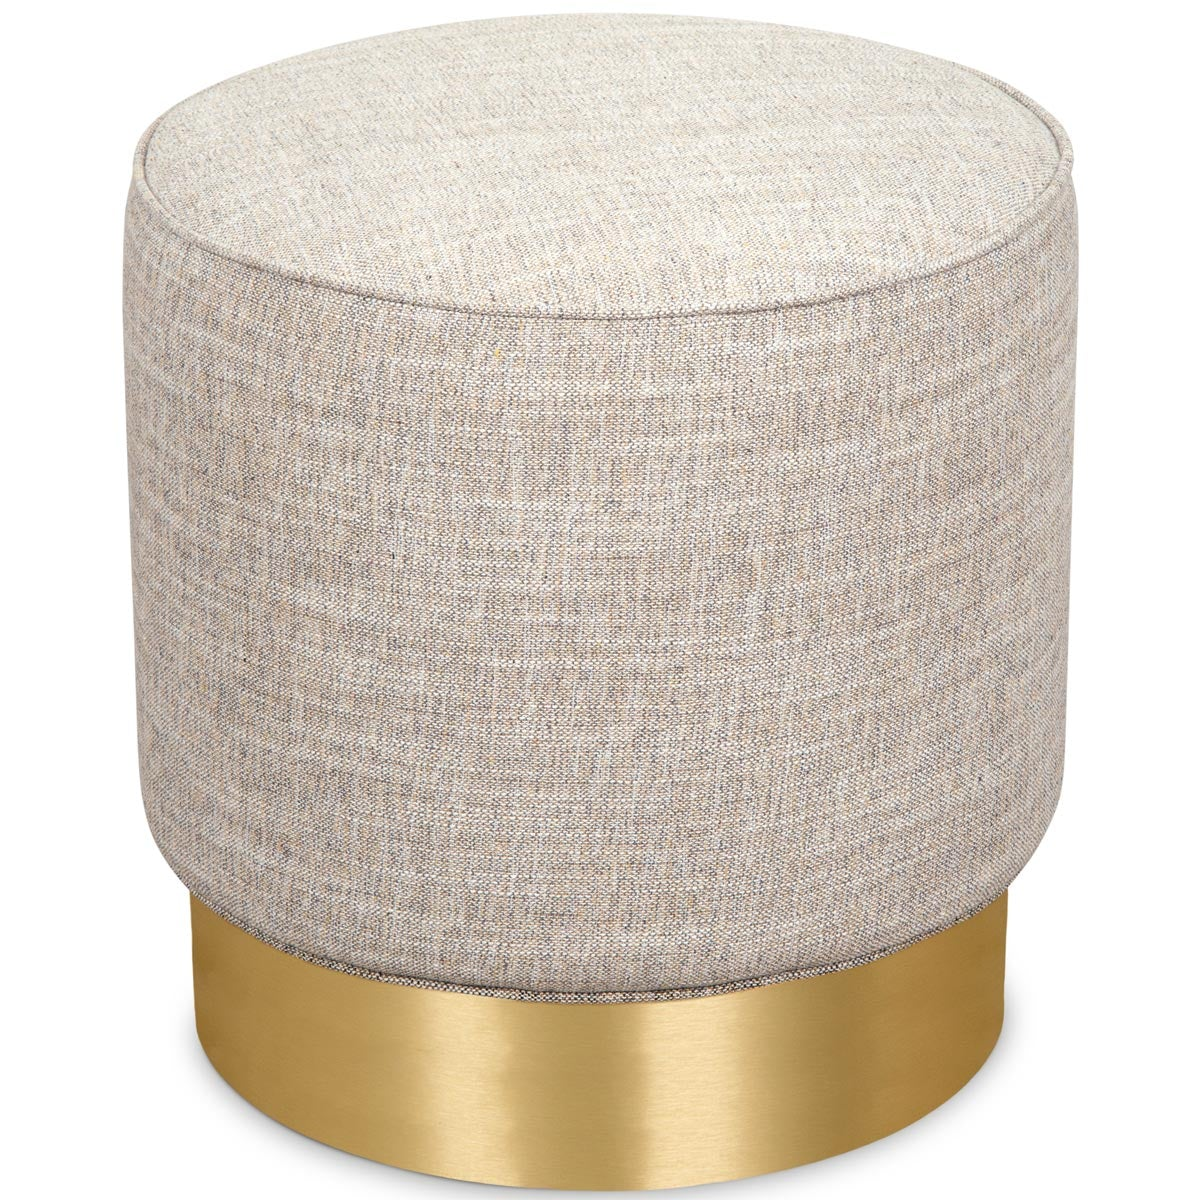 Round ottoman with a brushed brass pedestal base and linen butterscotch upholstery.